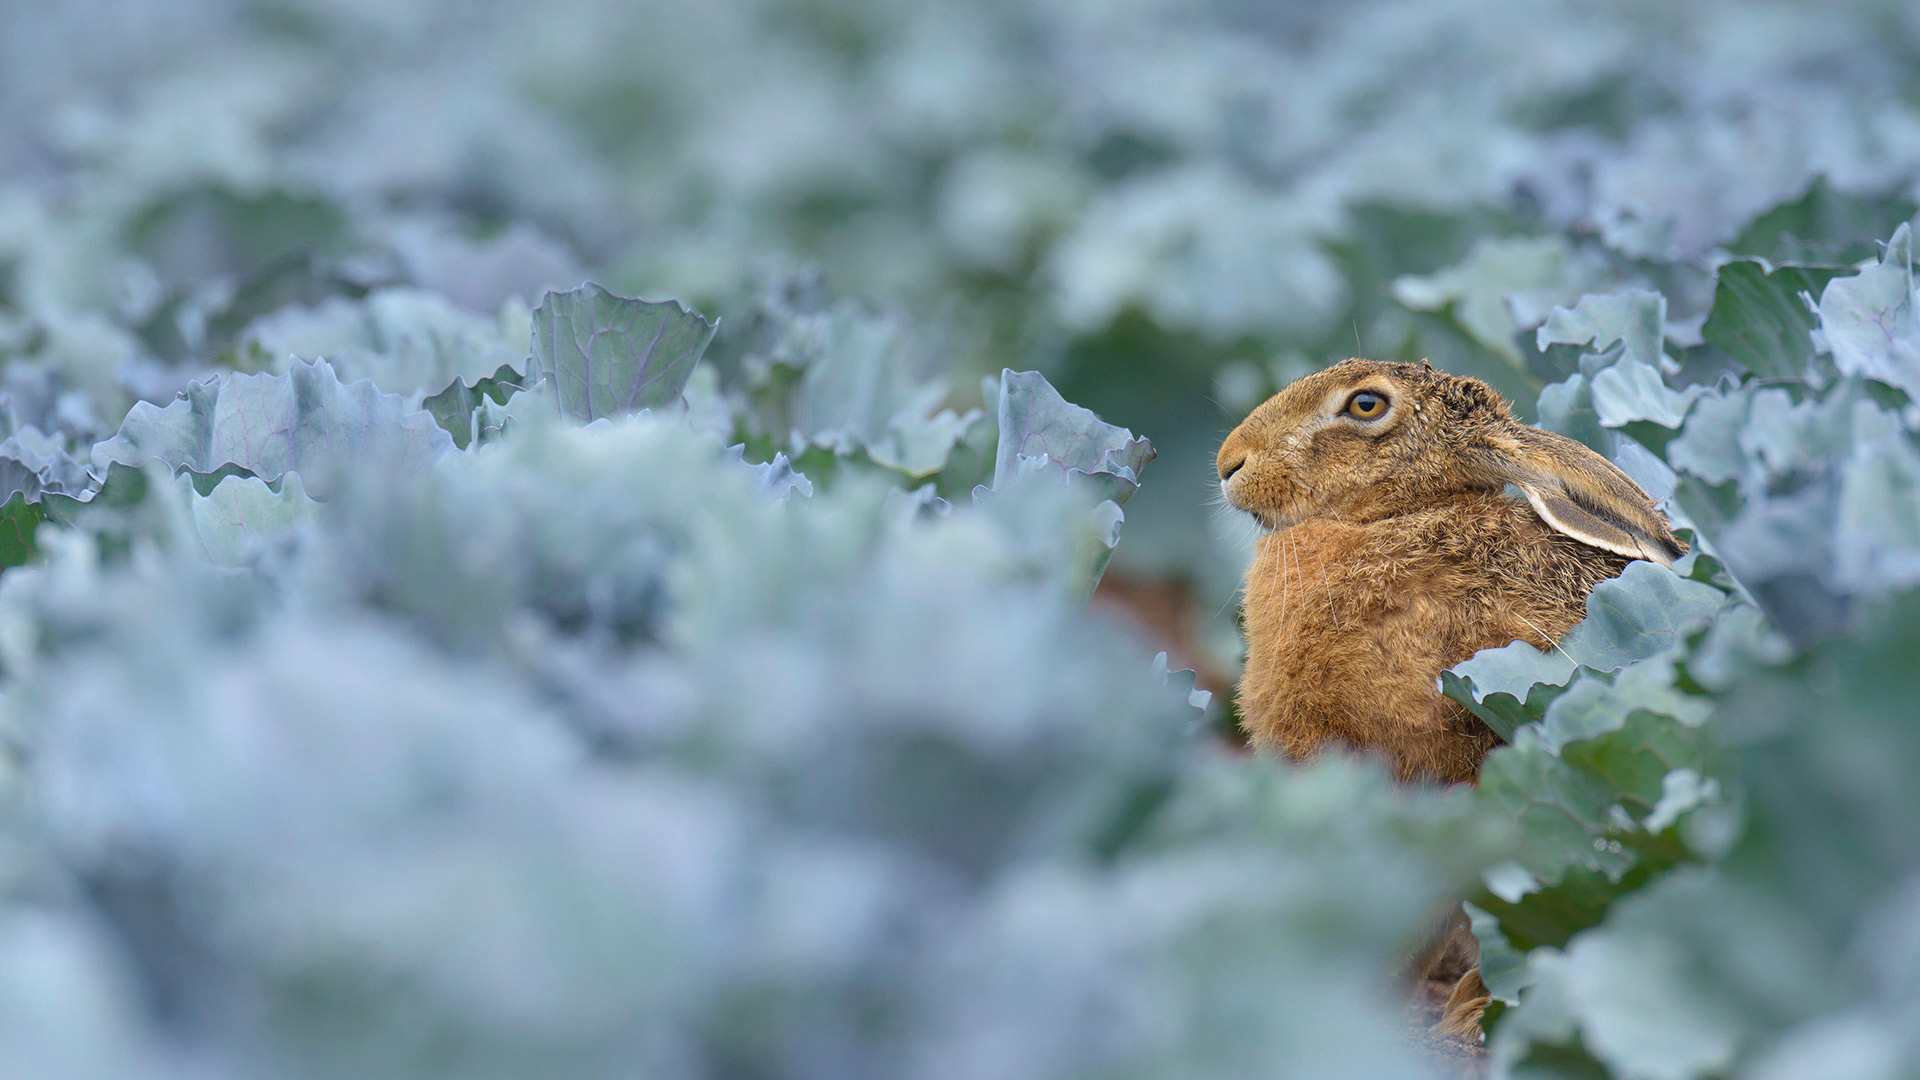 European brown hare (Lepus europaeus) in red cabbage field, Hessen, Germany (© Radius Images/Alamy Stock Photo)